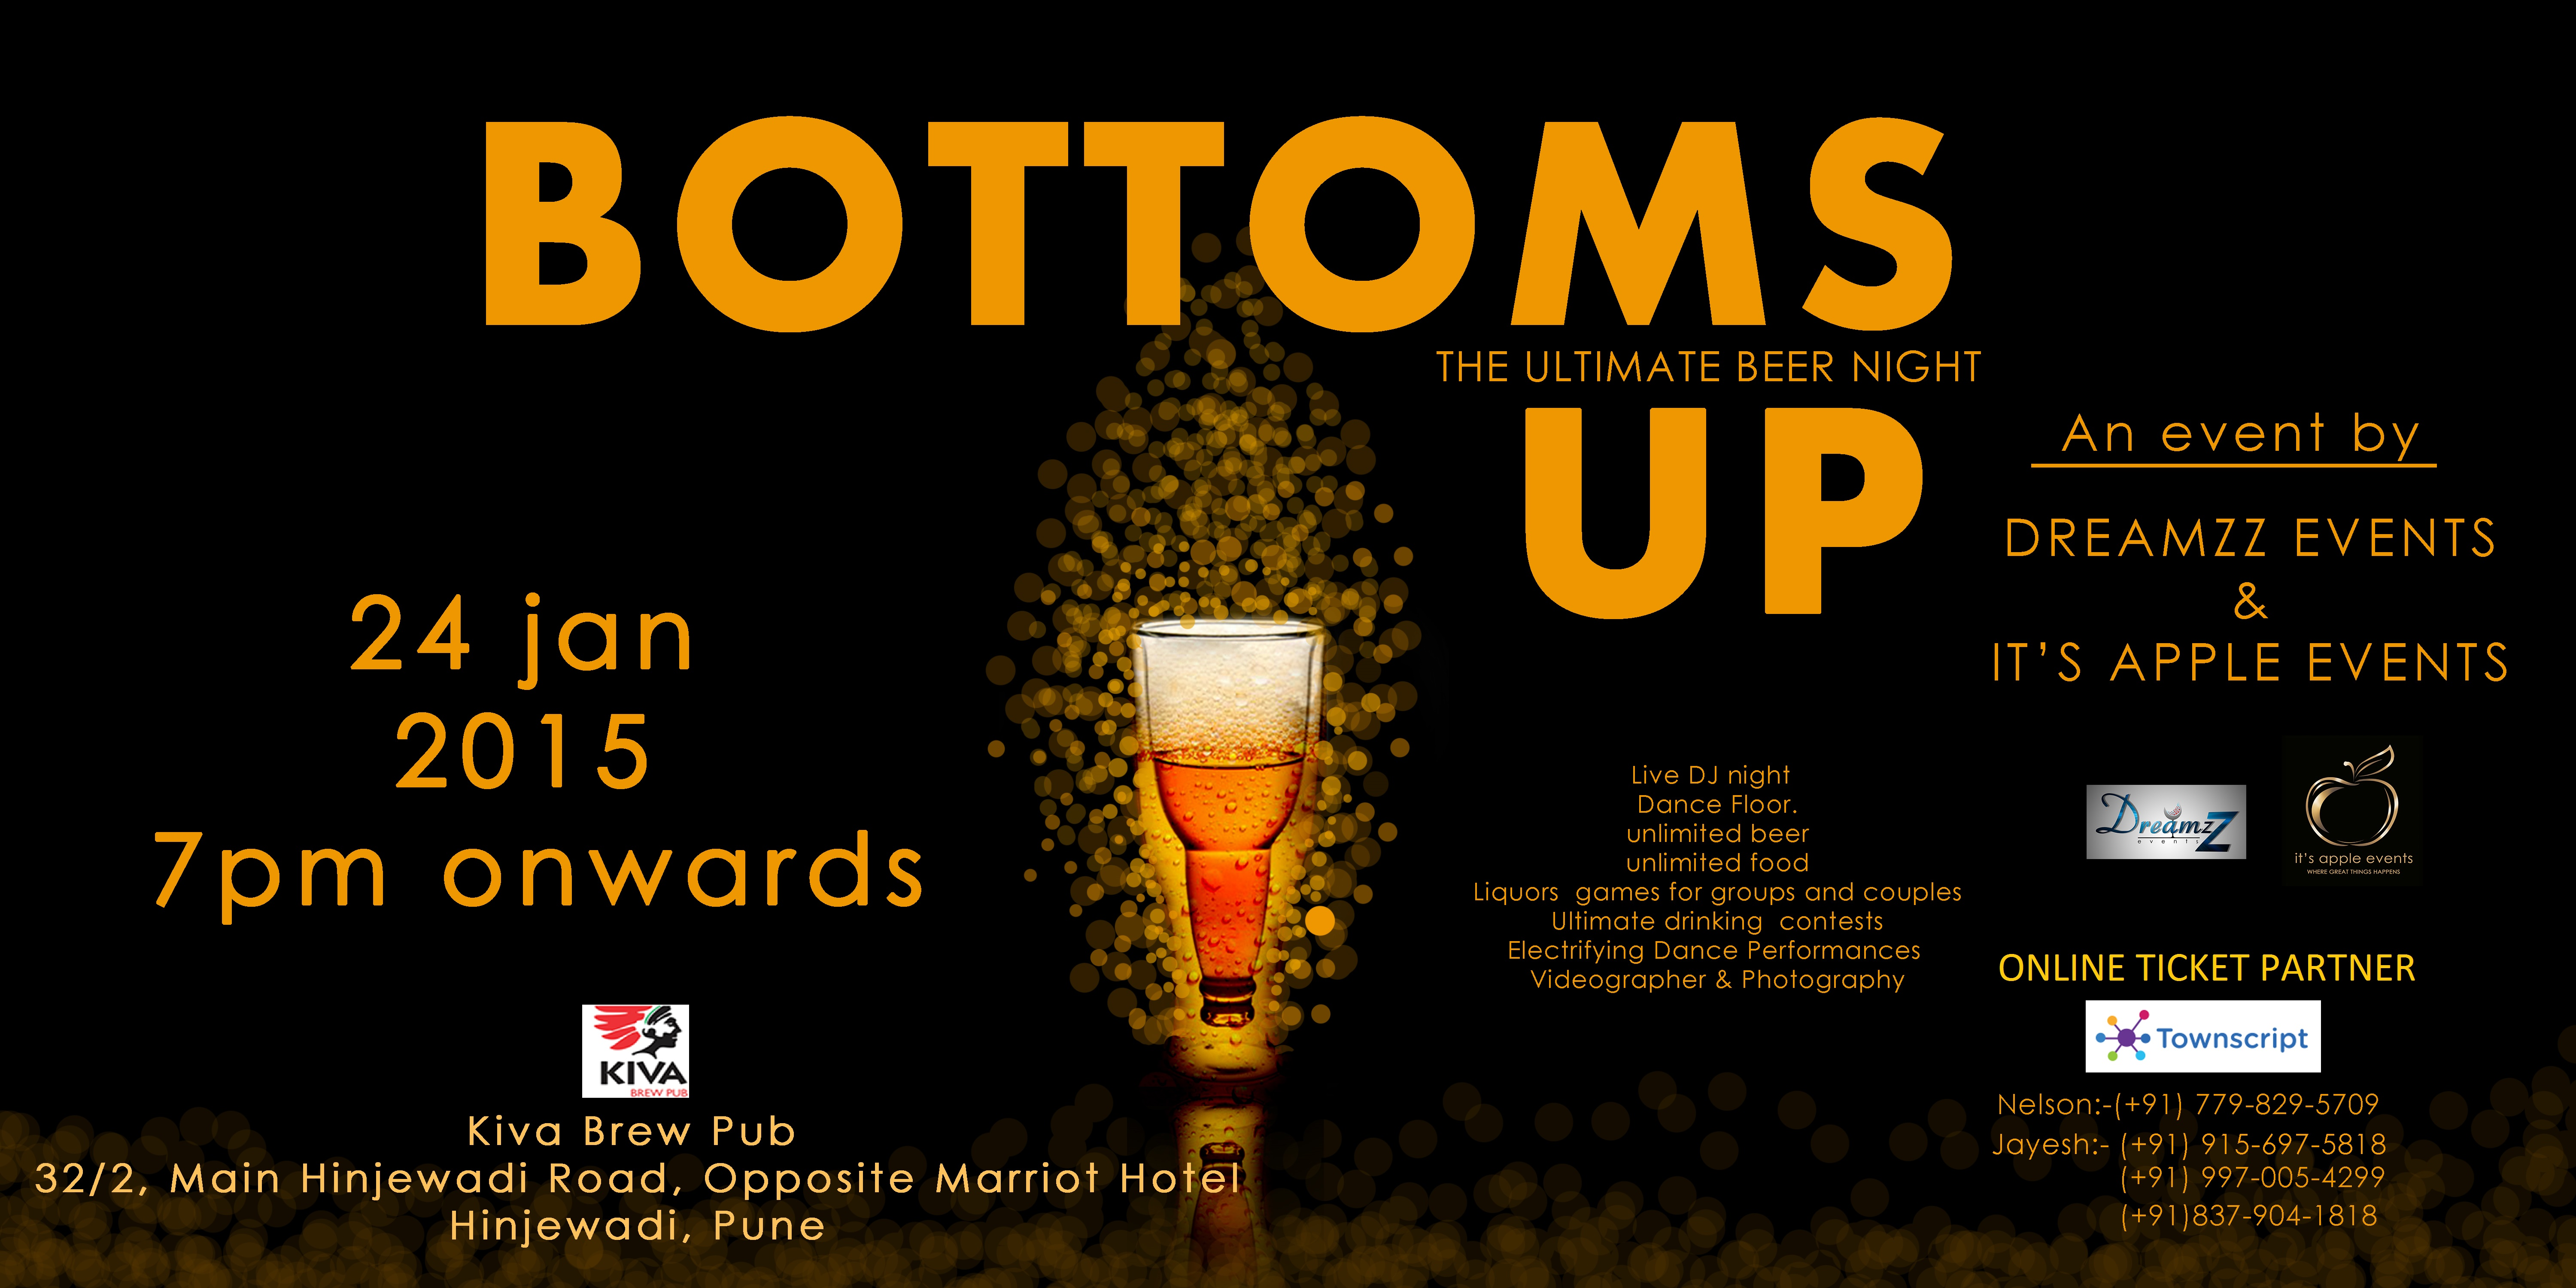 Bottoms Up. The ultimate beer night